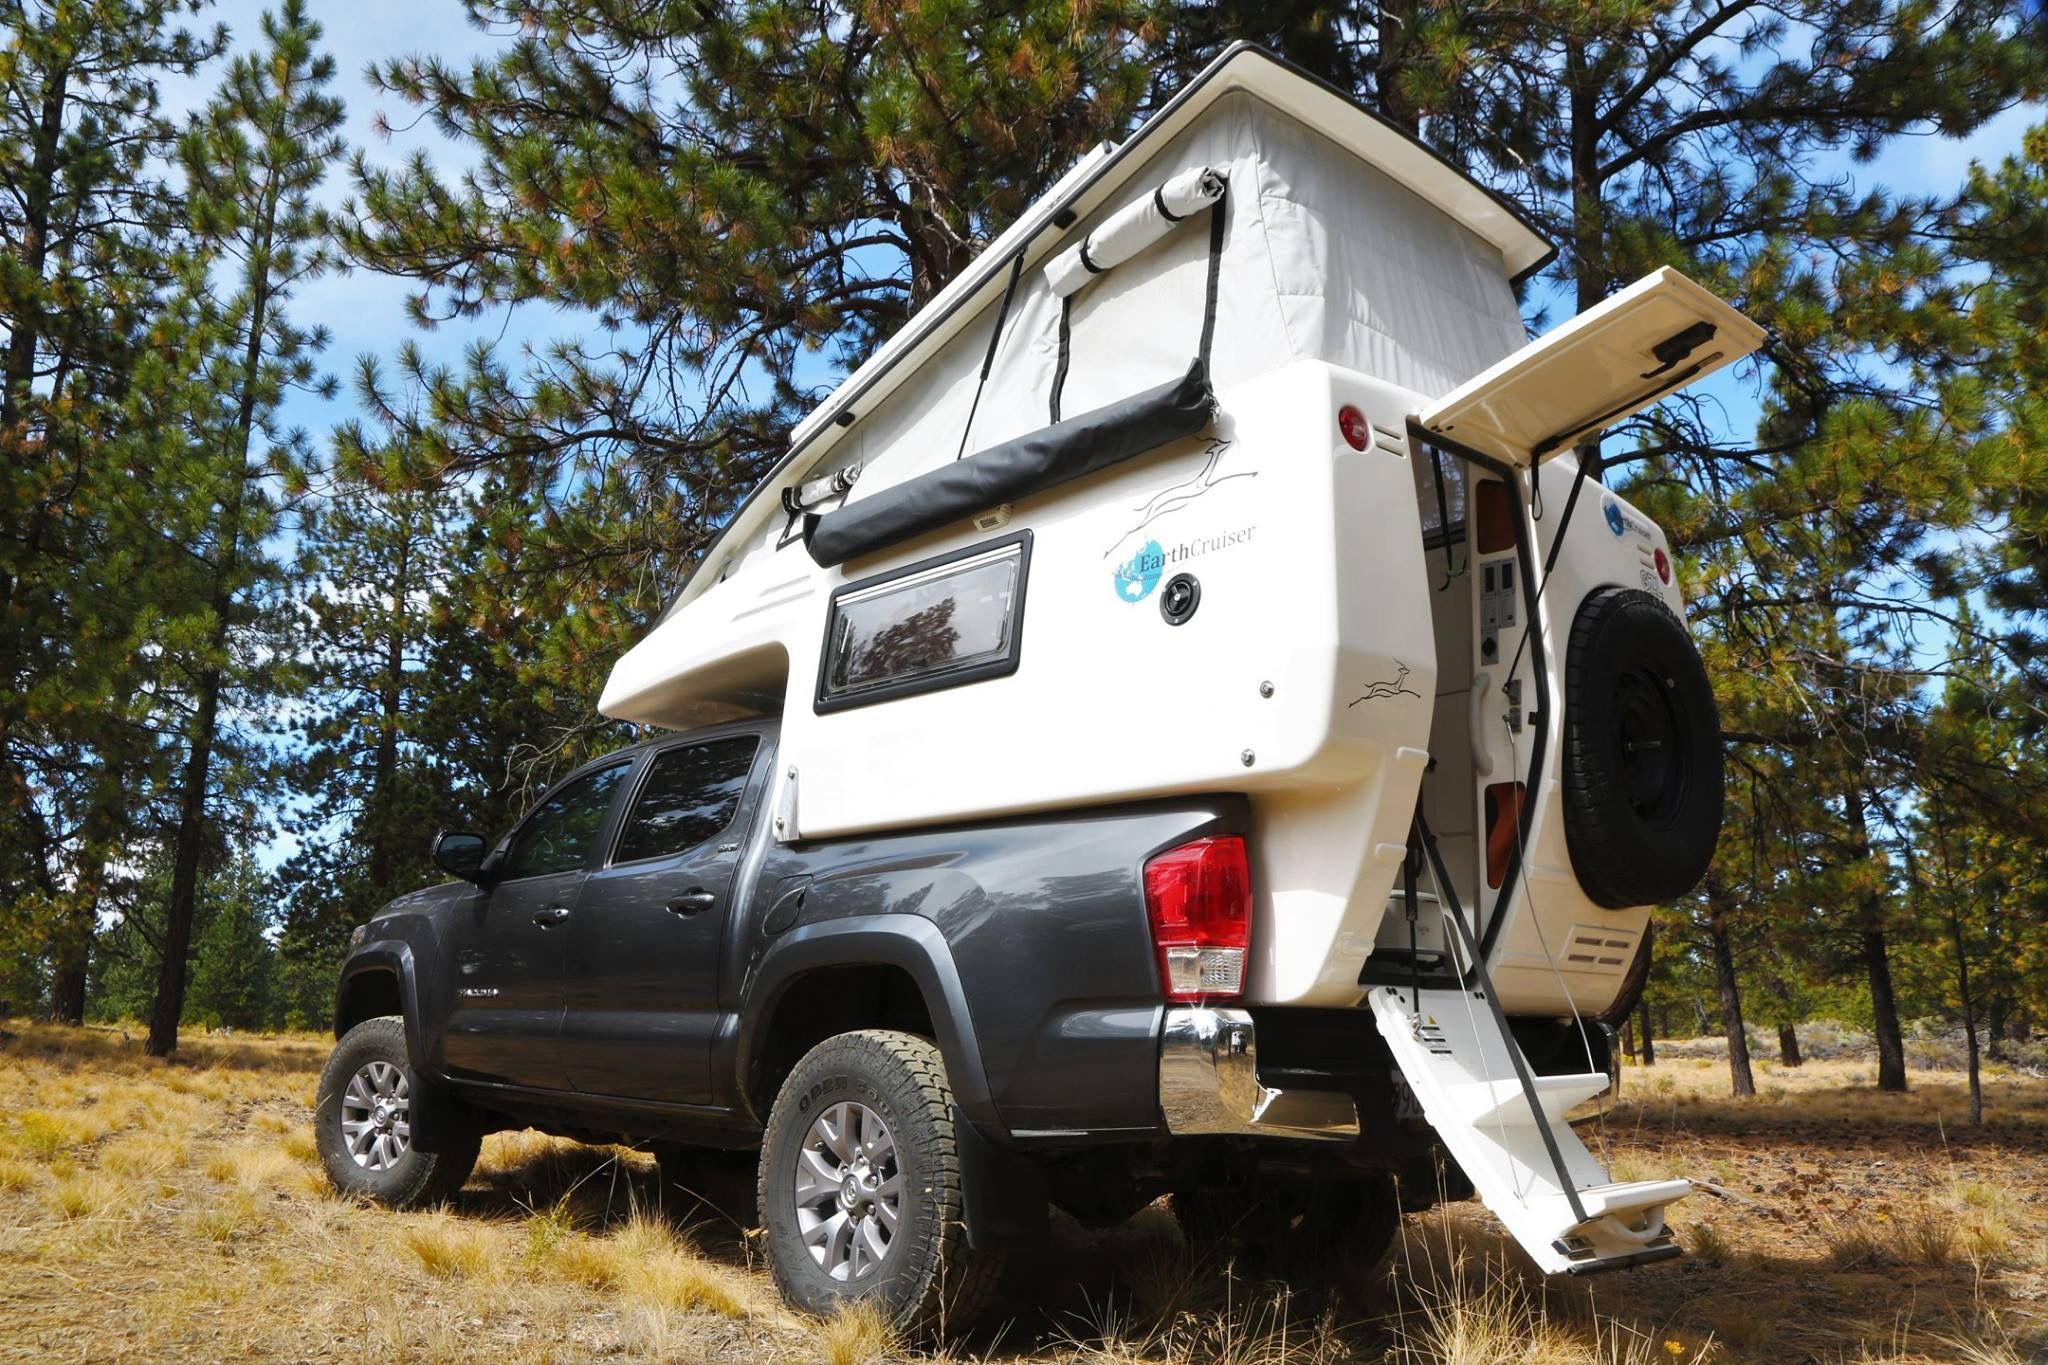 Getting to know whats inside the EarthCruiser GZL.